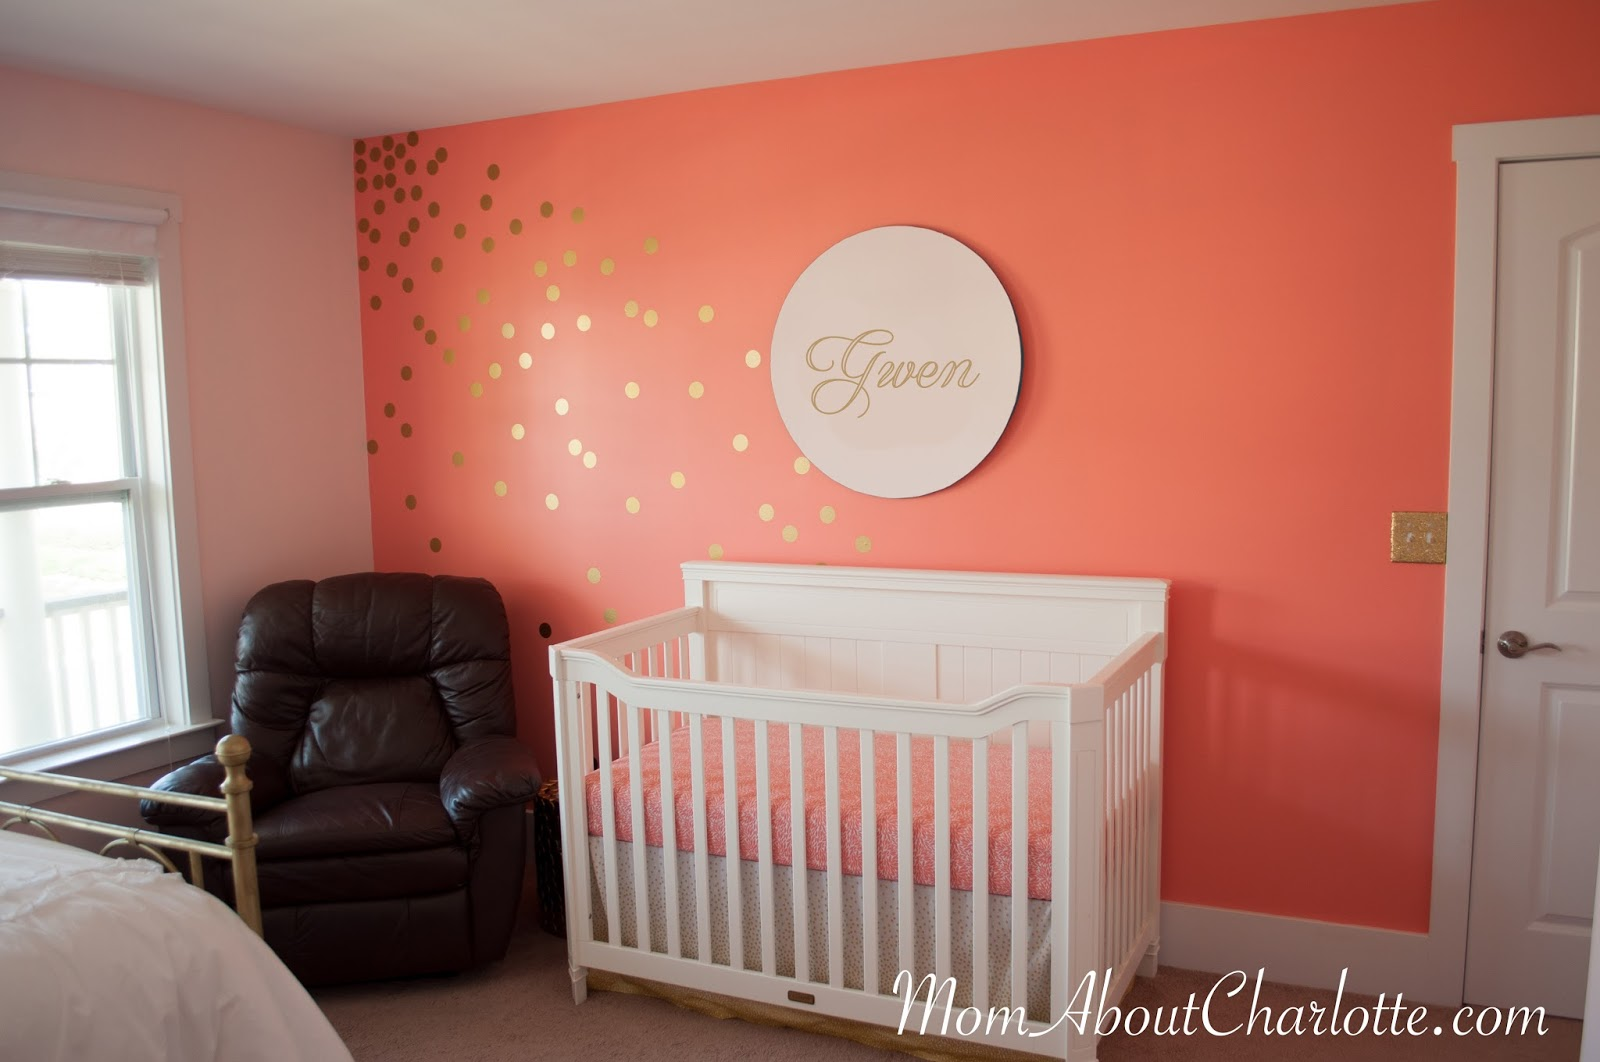 Gold coral amp teal nursery get the look mom about charlotte